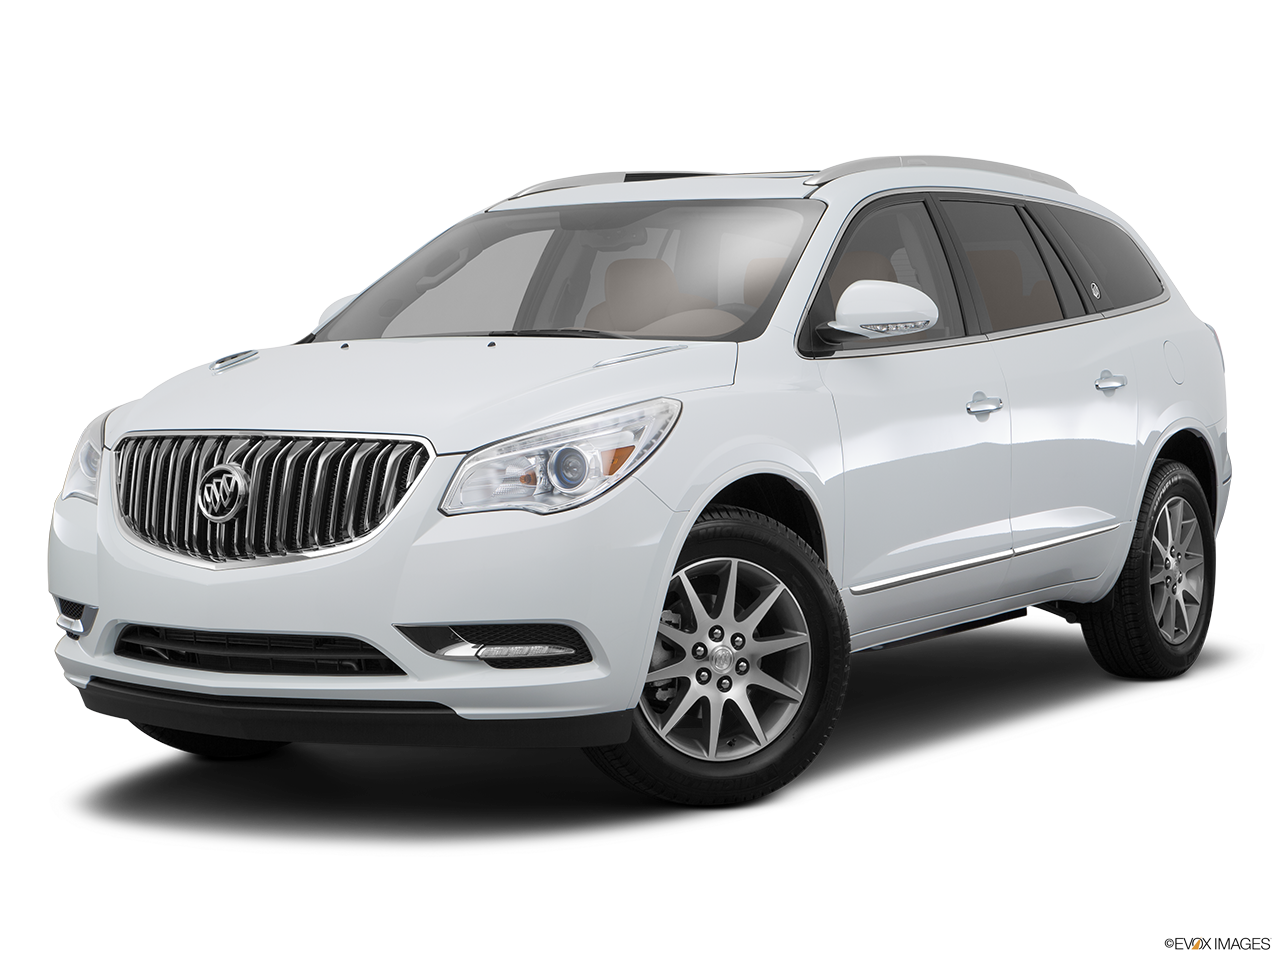 2016 buick regal clipart svg transparent library 2016 Buick Enclave dealer In Orange County | Hardin Buick GMC svg transparent library